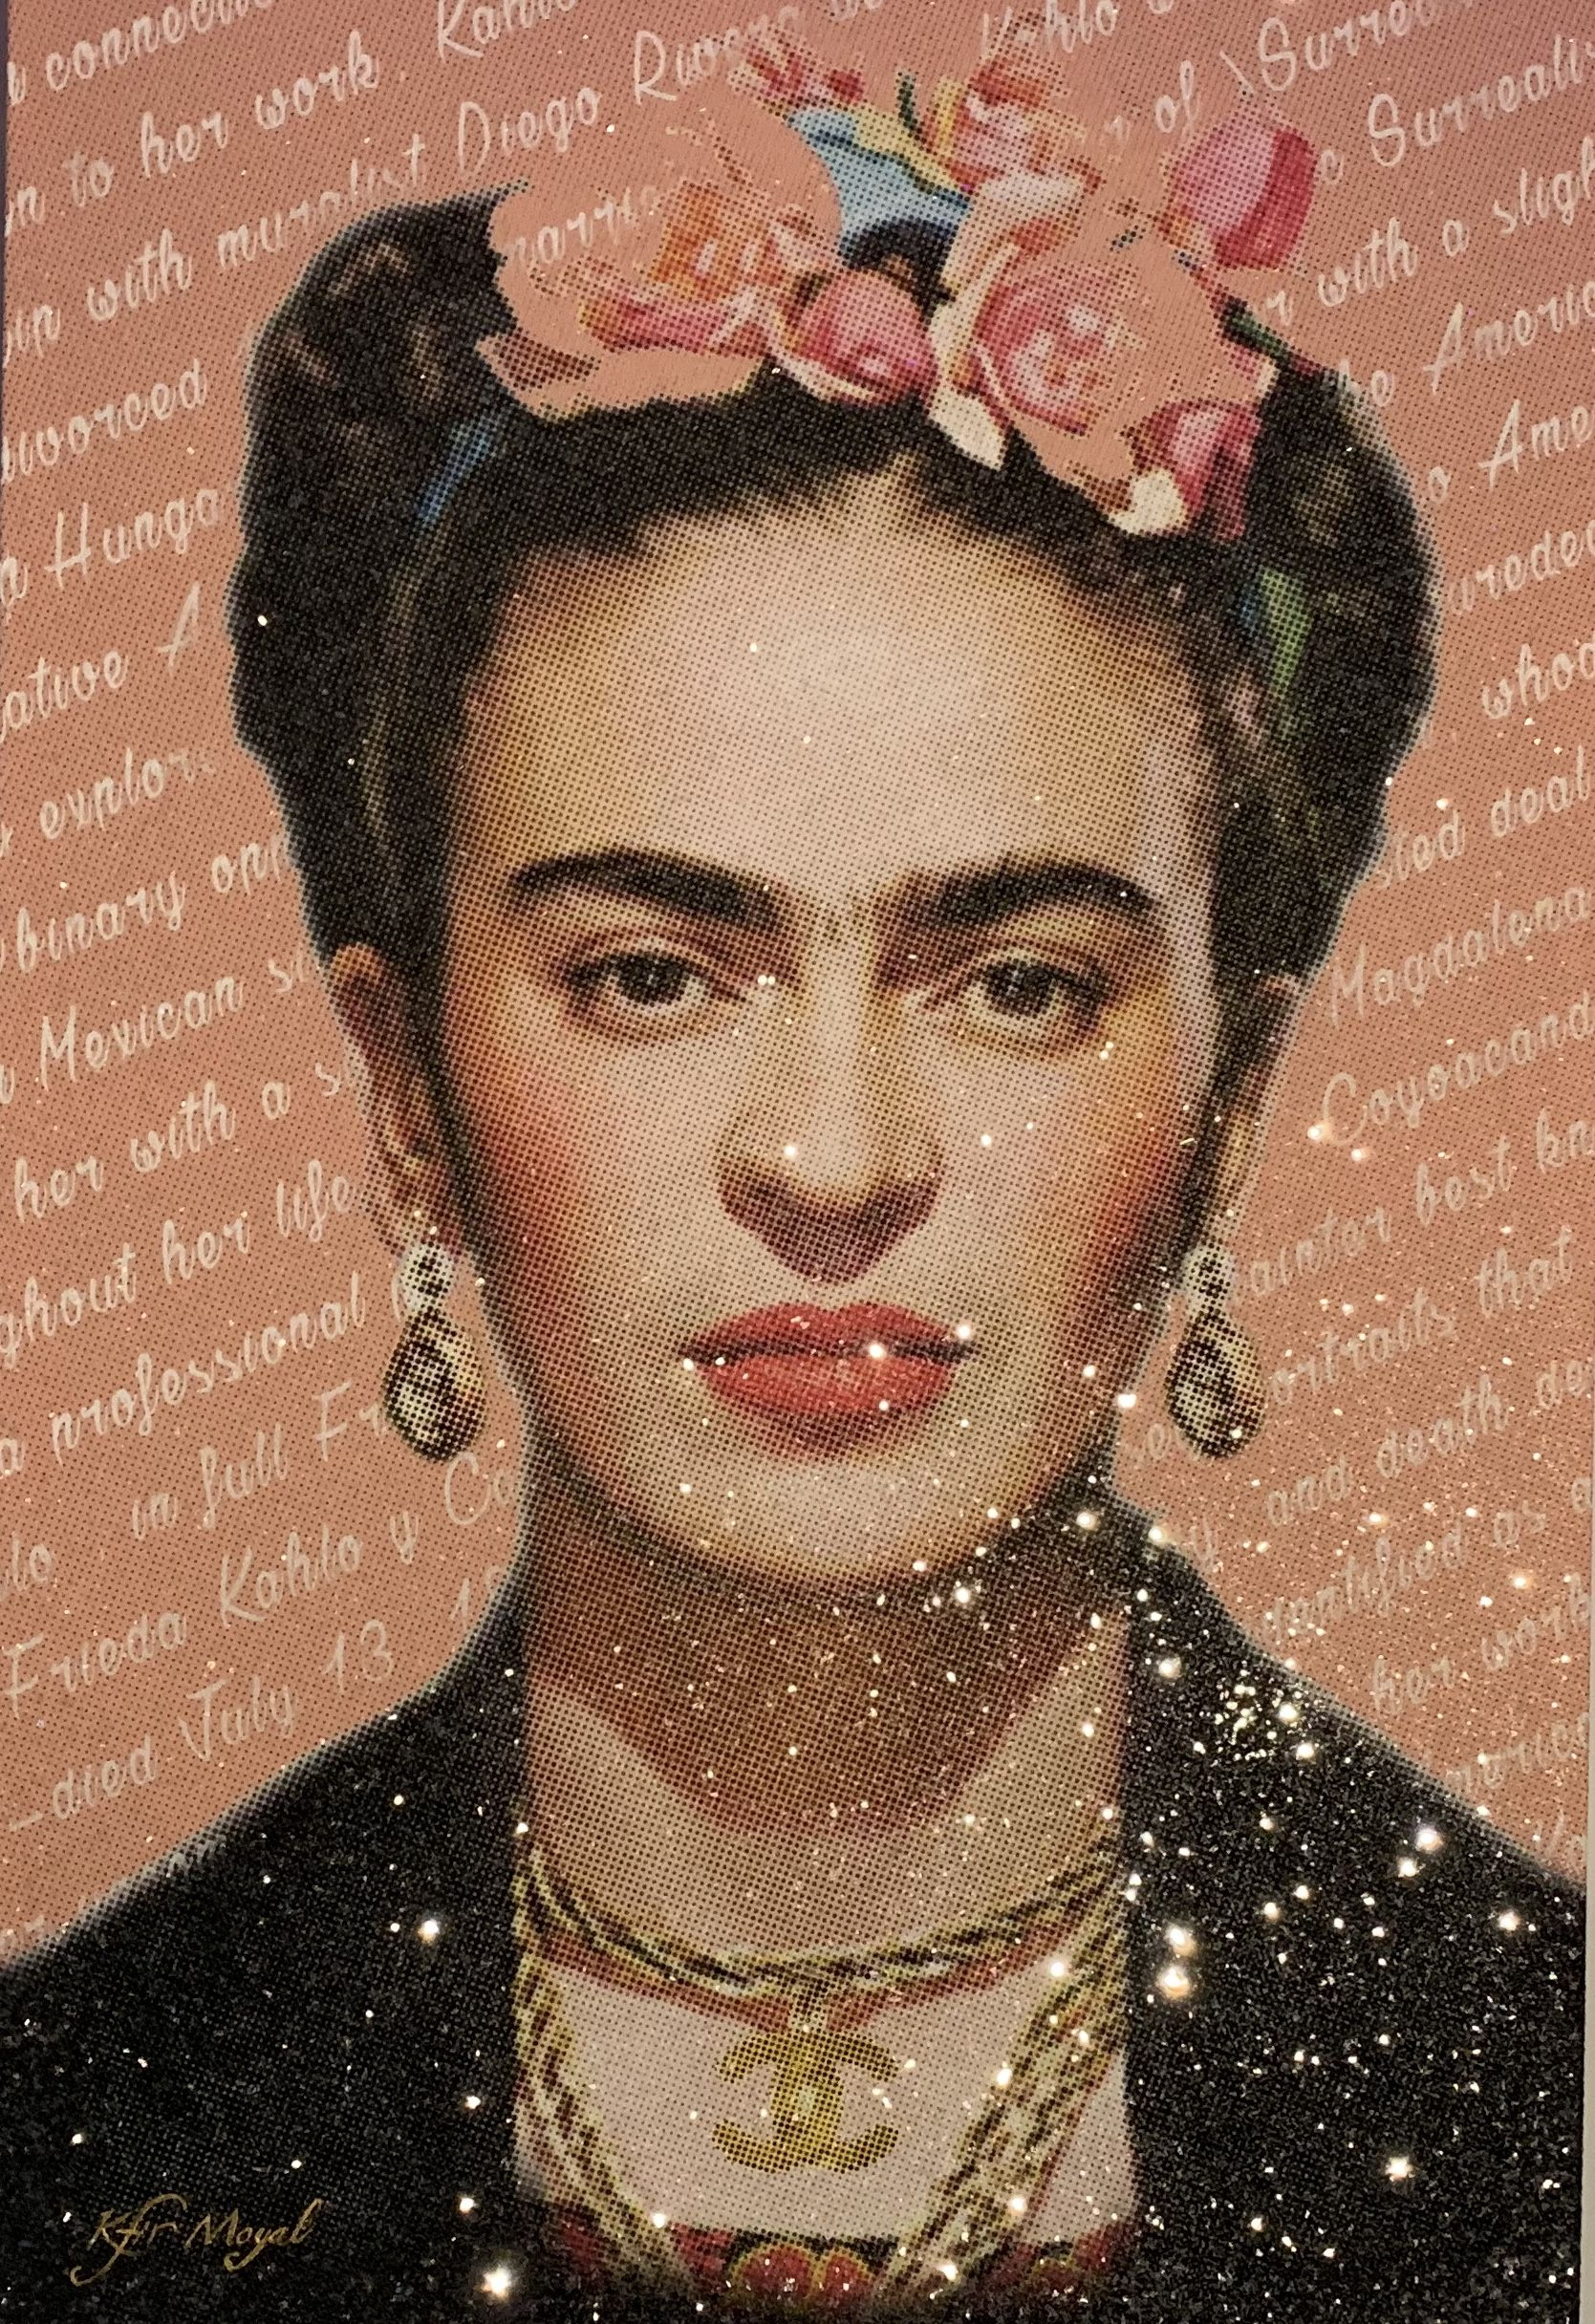 Kfir Moyal - Frida, 2019; Limited edition mixed media silkscreen on canvas, diamond dust, and hand-embellished Swarovski crystals; Off The Wall Gallery Houston.